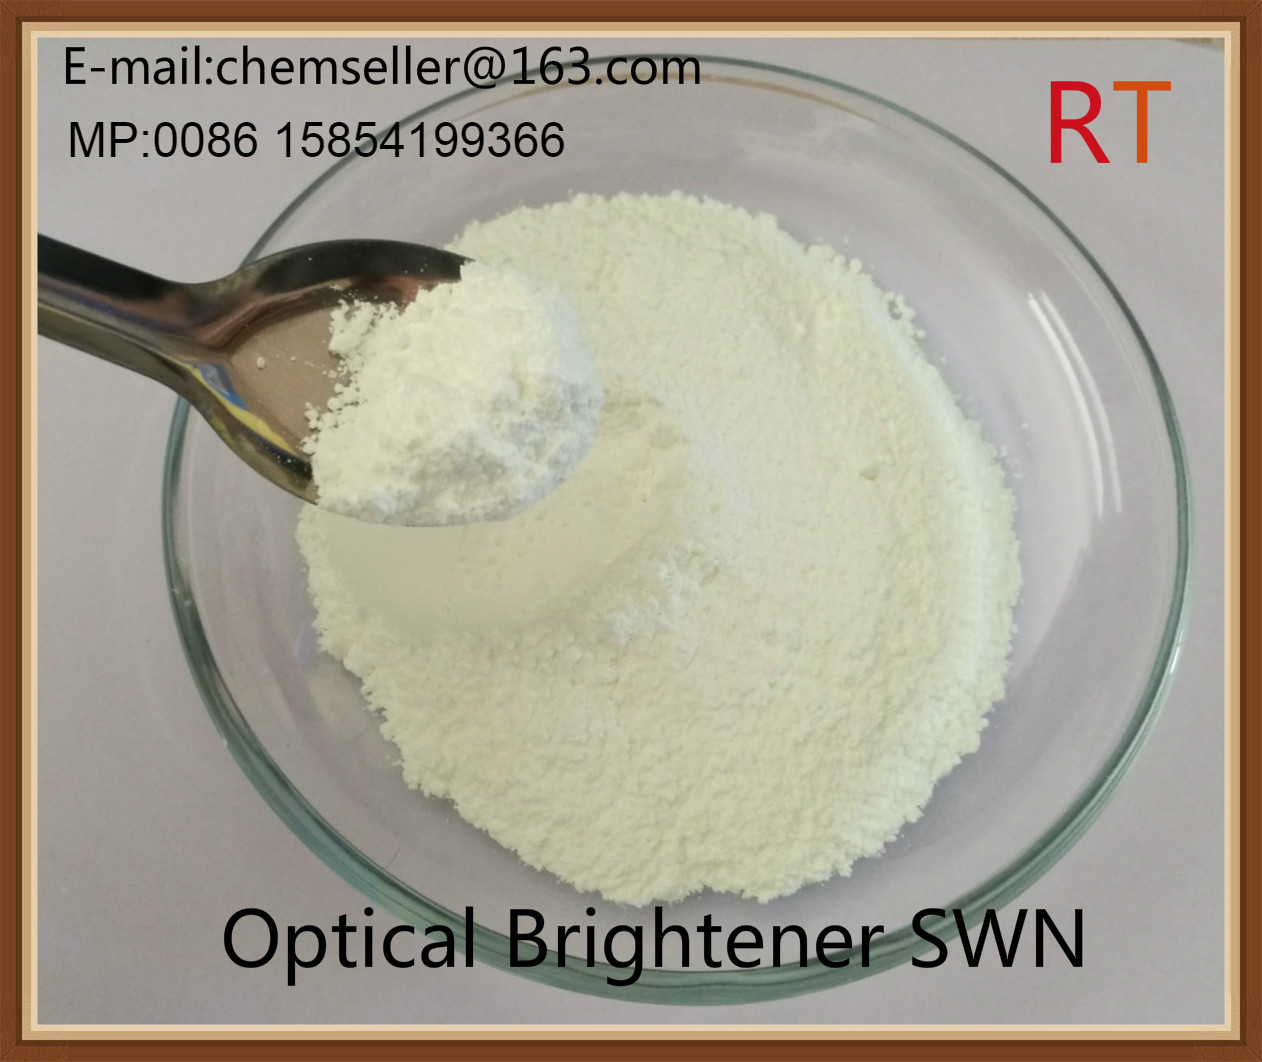 Optical Brightener SWN 140/MDAC 140 for WOOL